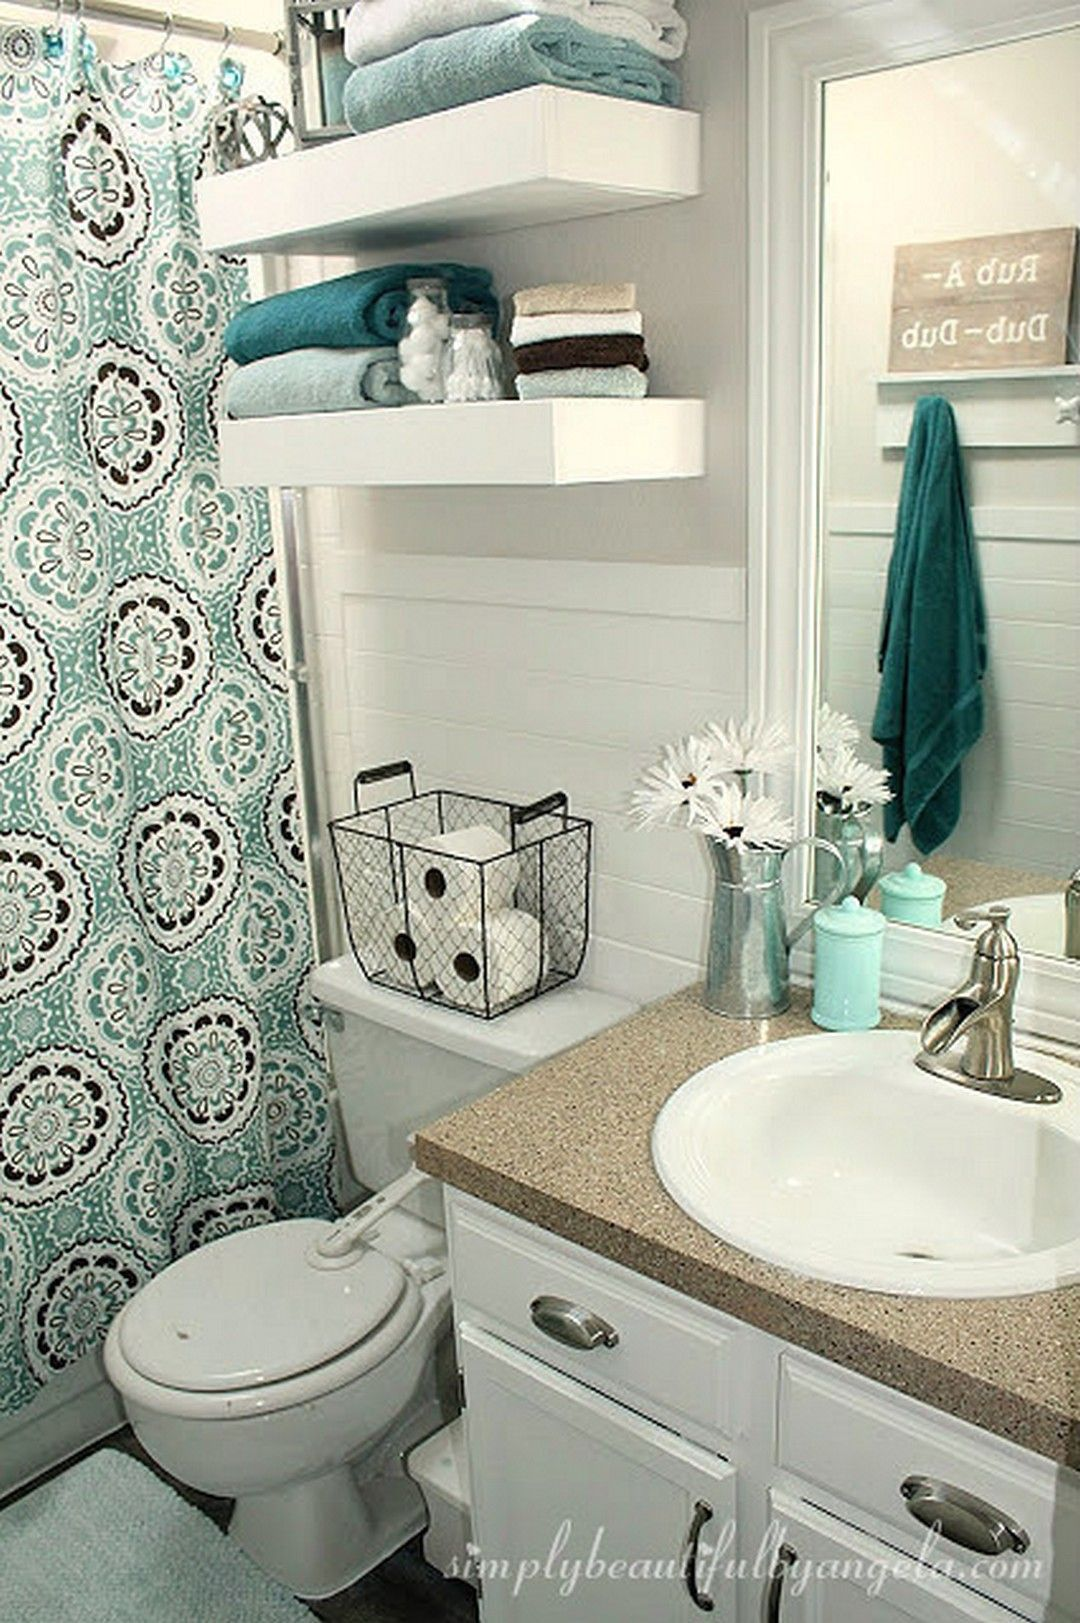 Ideas For Decorating Small Bathrooms 2021 Small Apartment Bathroom Bathroom Decor Small Bathroom Decor